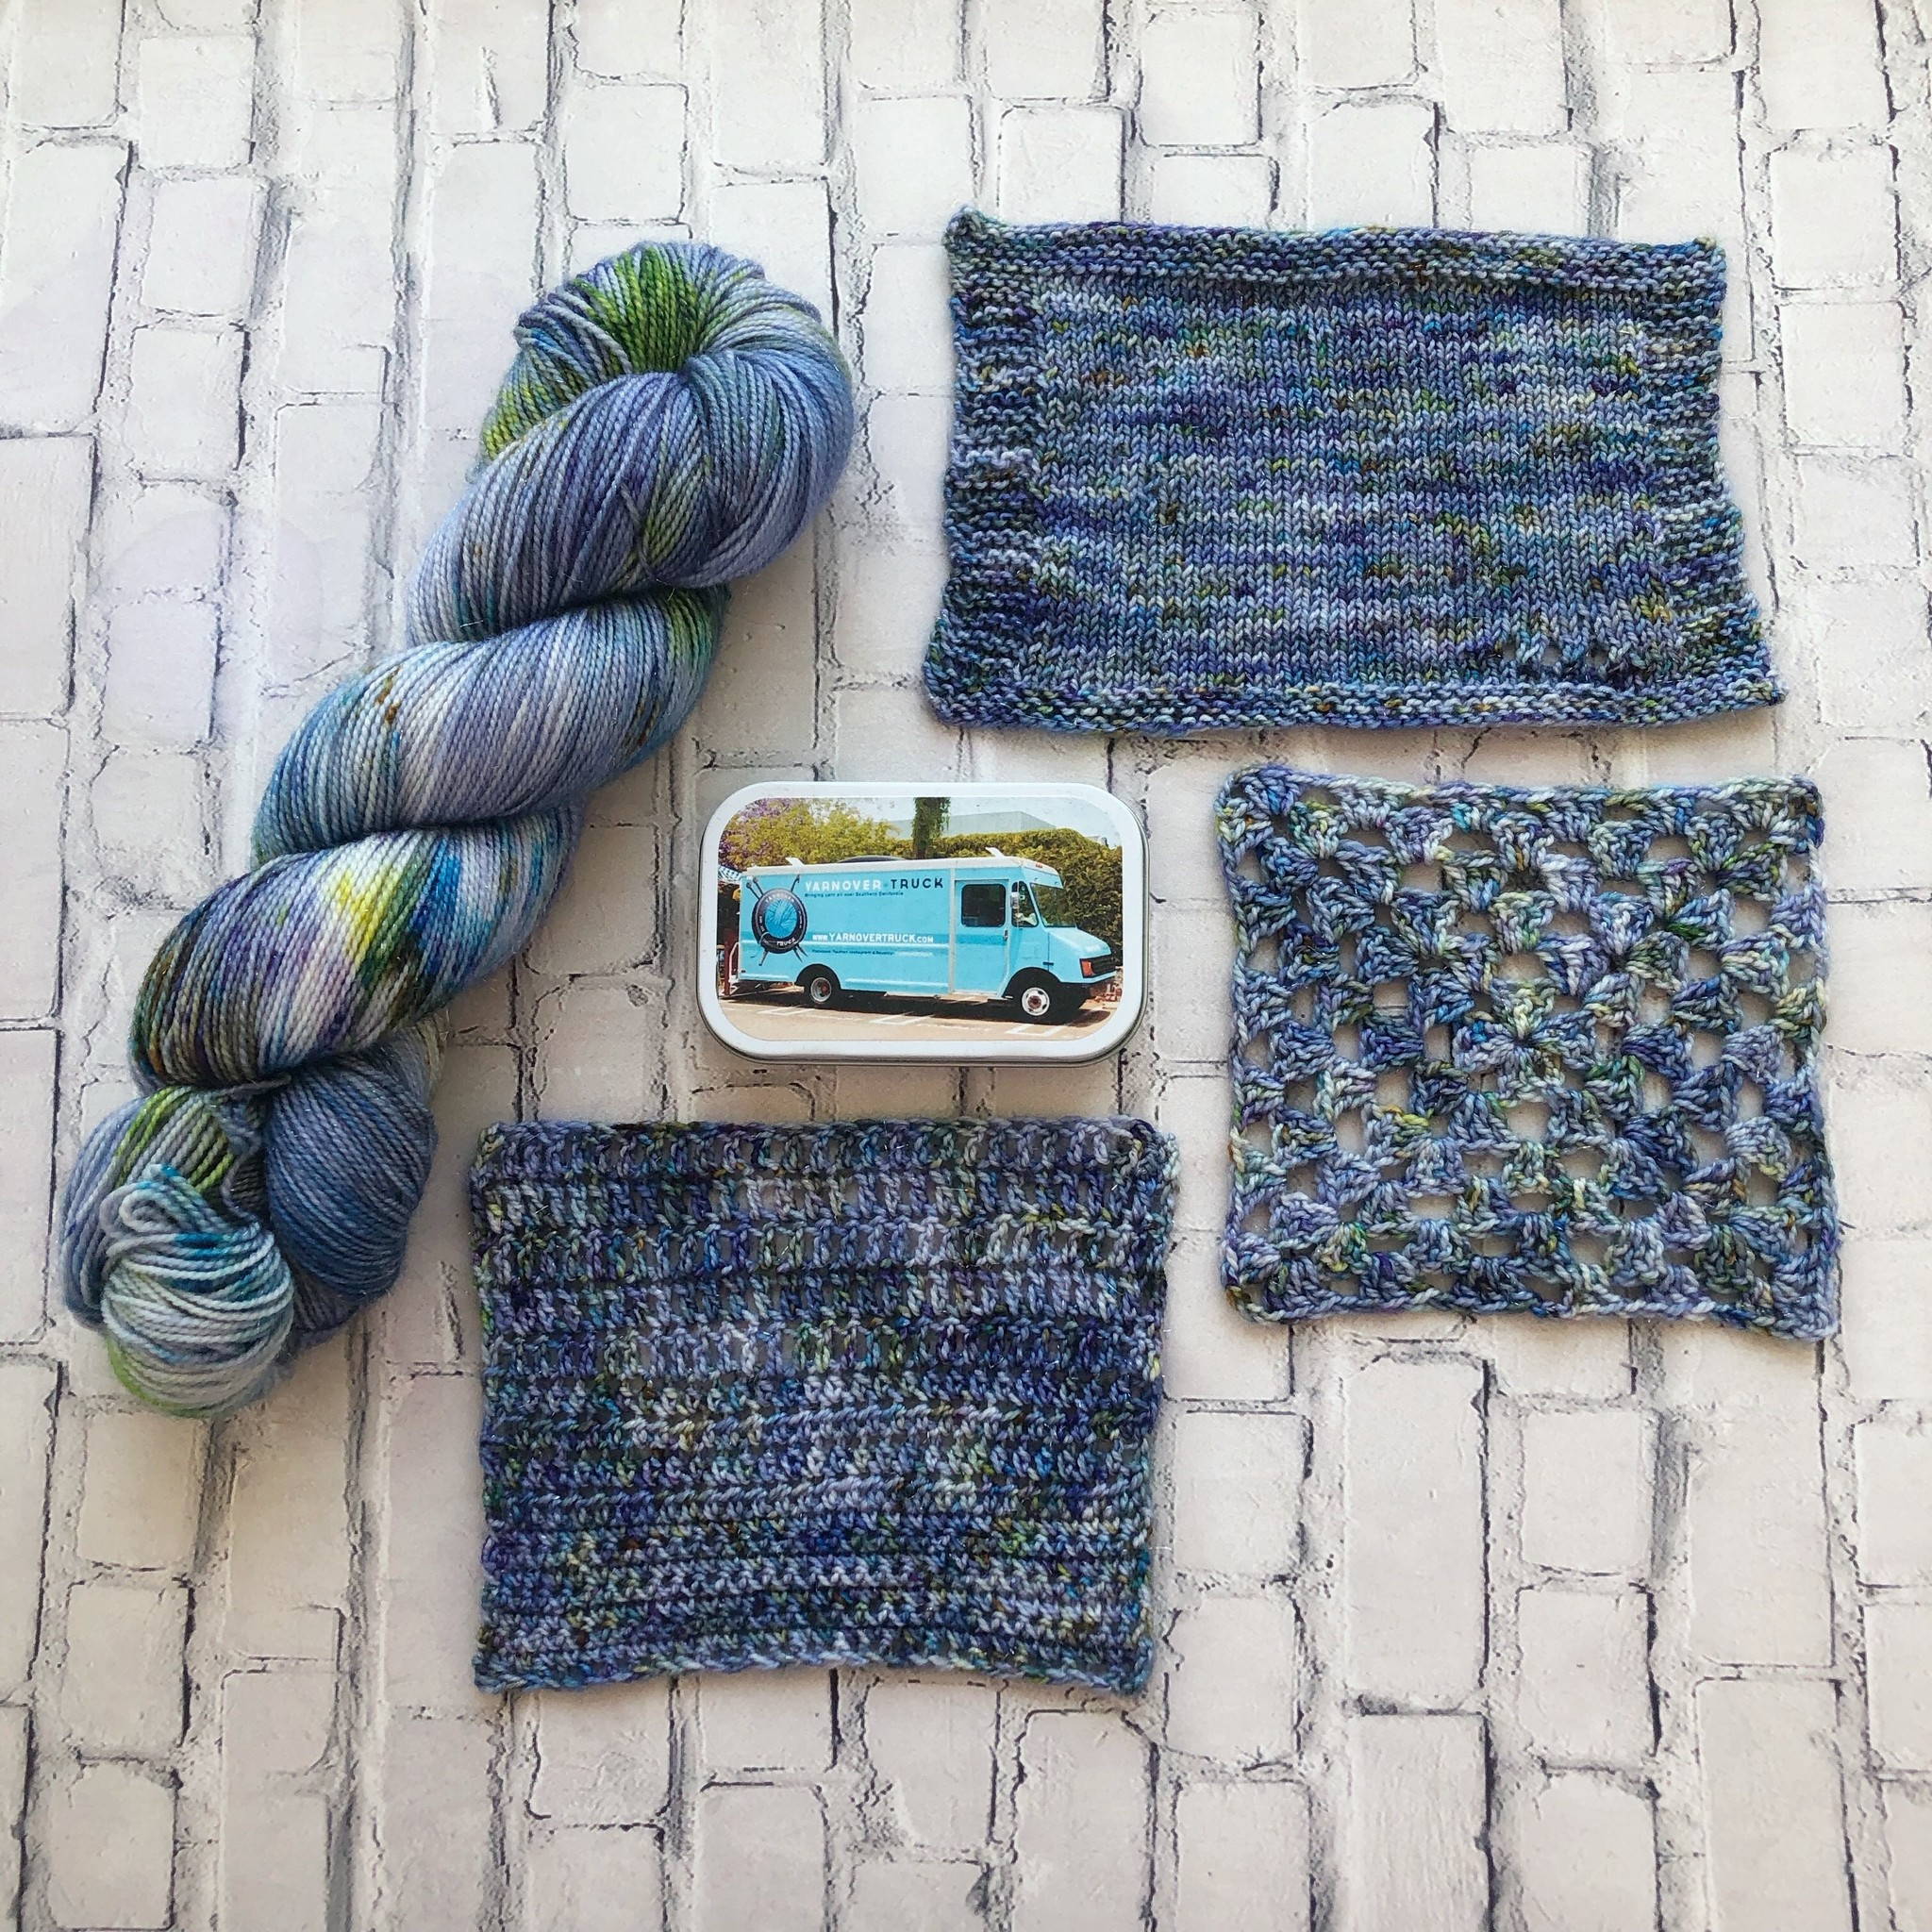 Western Sky Knits Forget Me Not on Twinkle Sock from Western Sky Knits